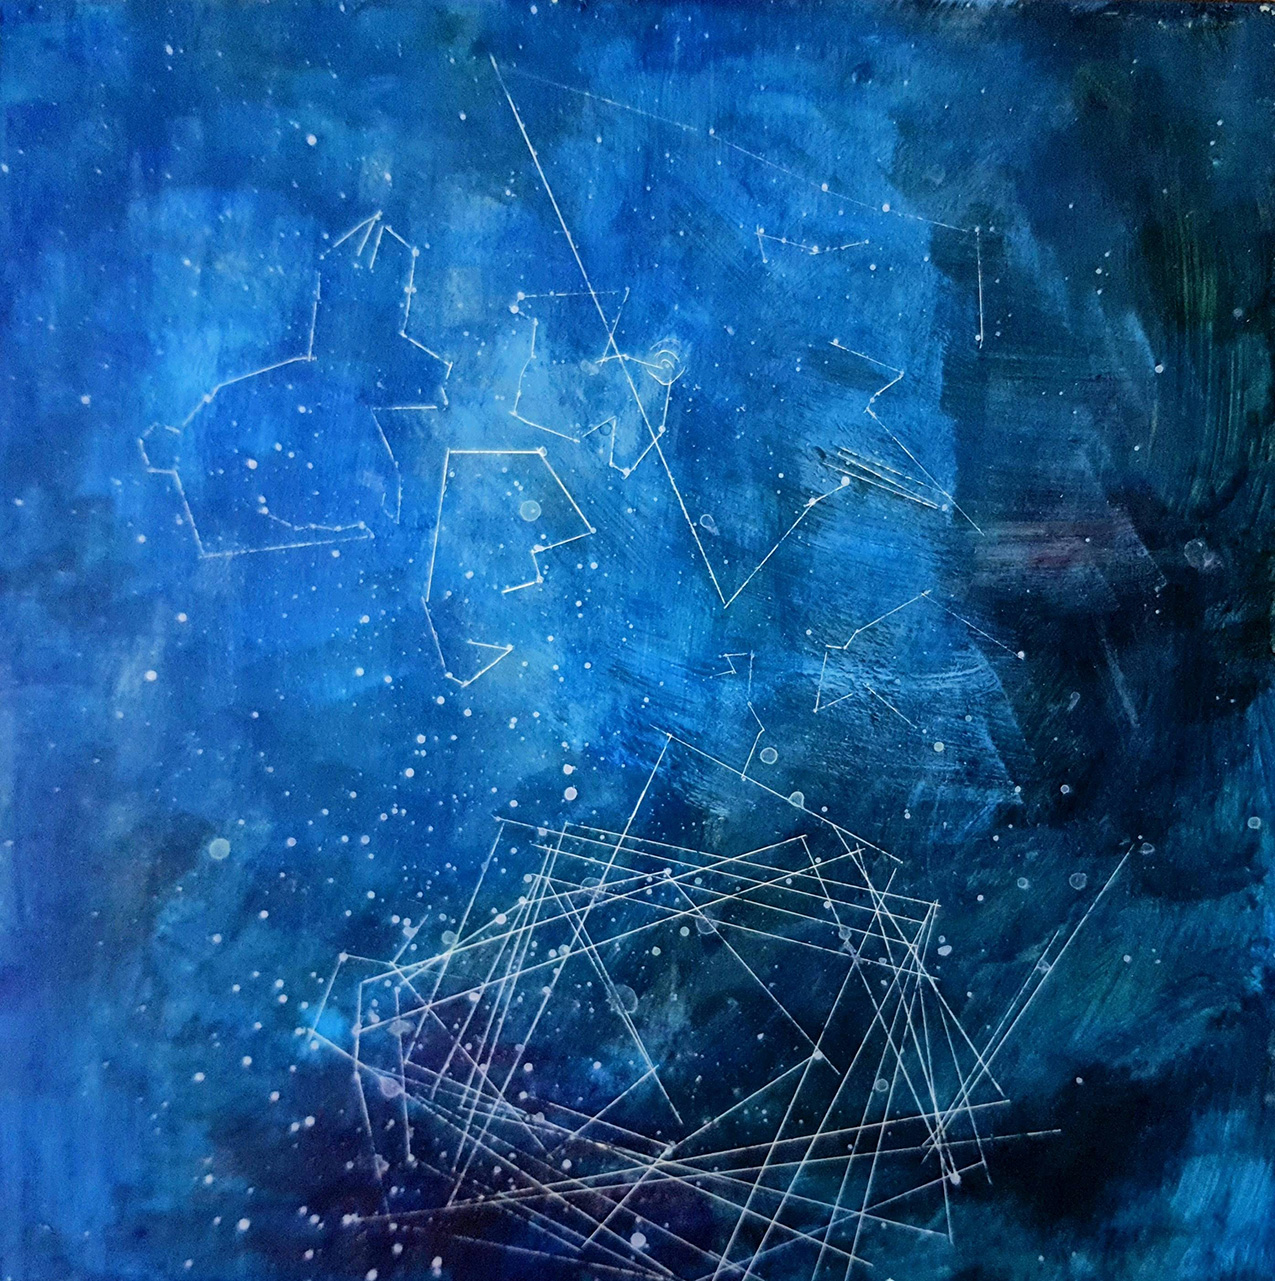 Painting of a blue background with dots and constellations in white. Some constellations are abstract while others evoke animal shapes.